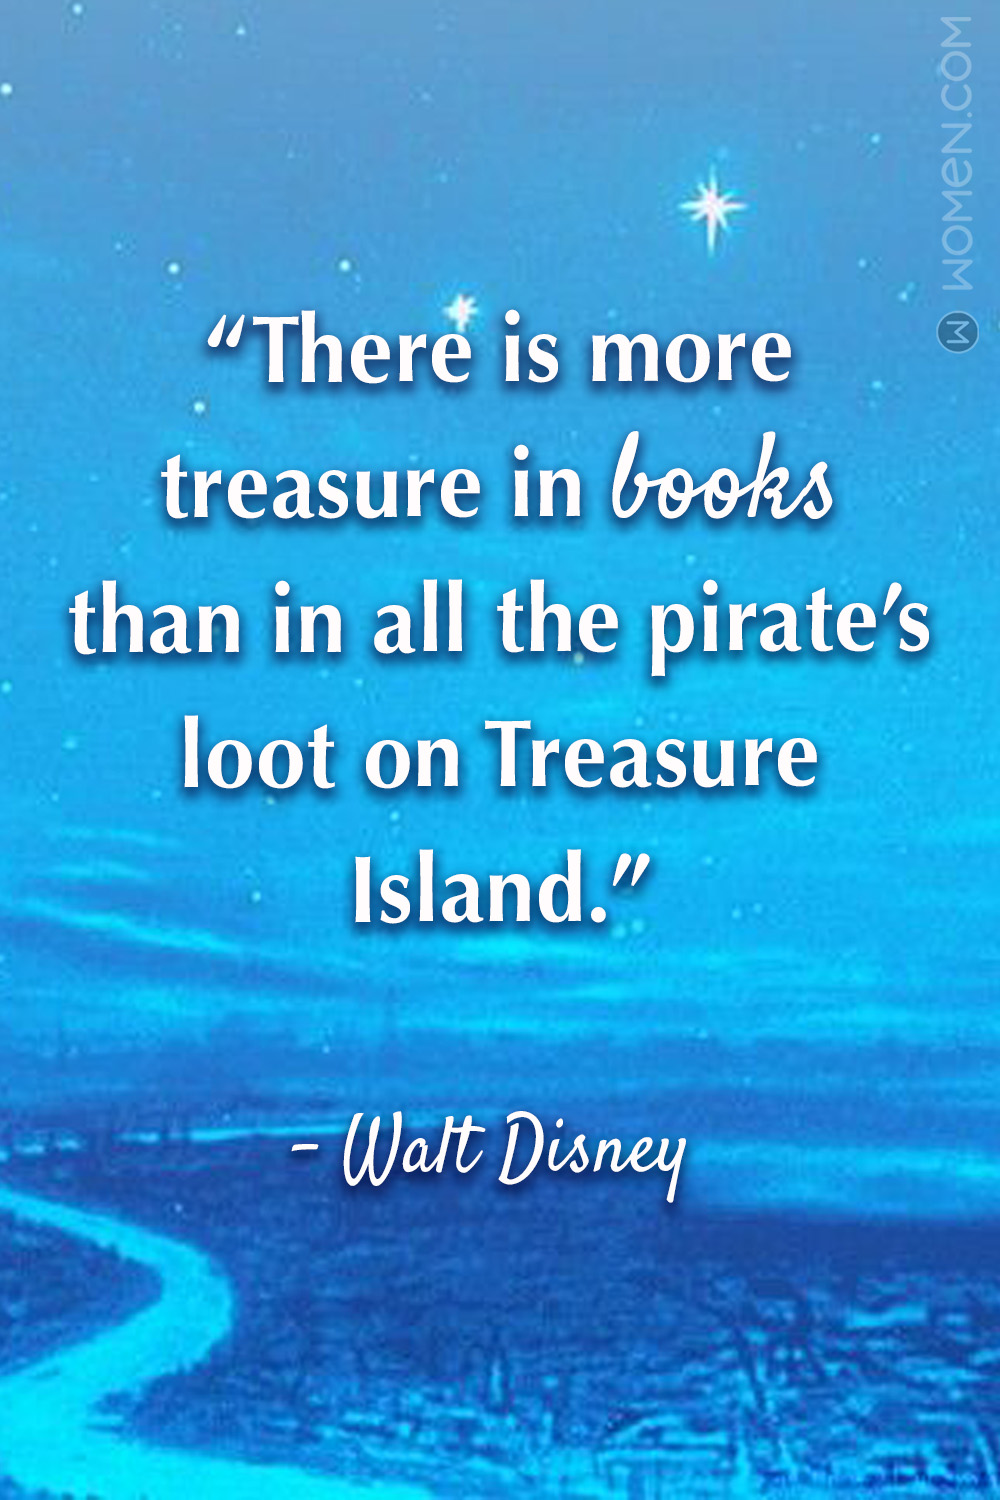 walt disney quote, Disney